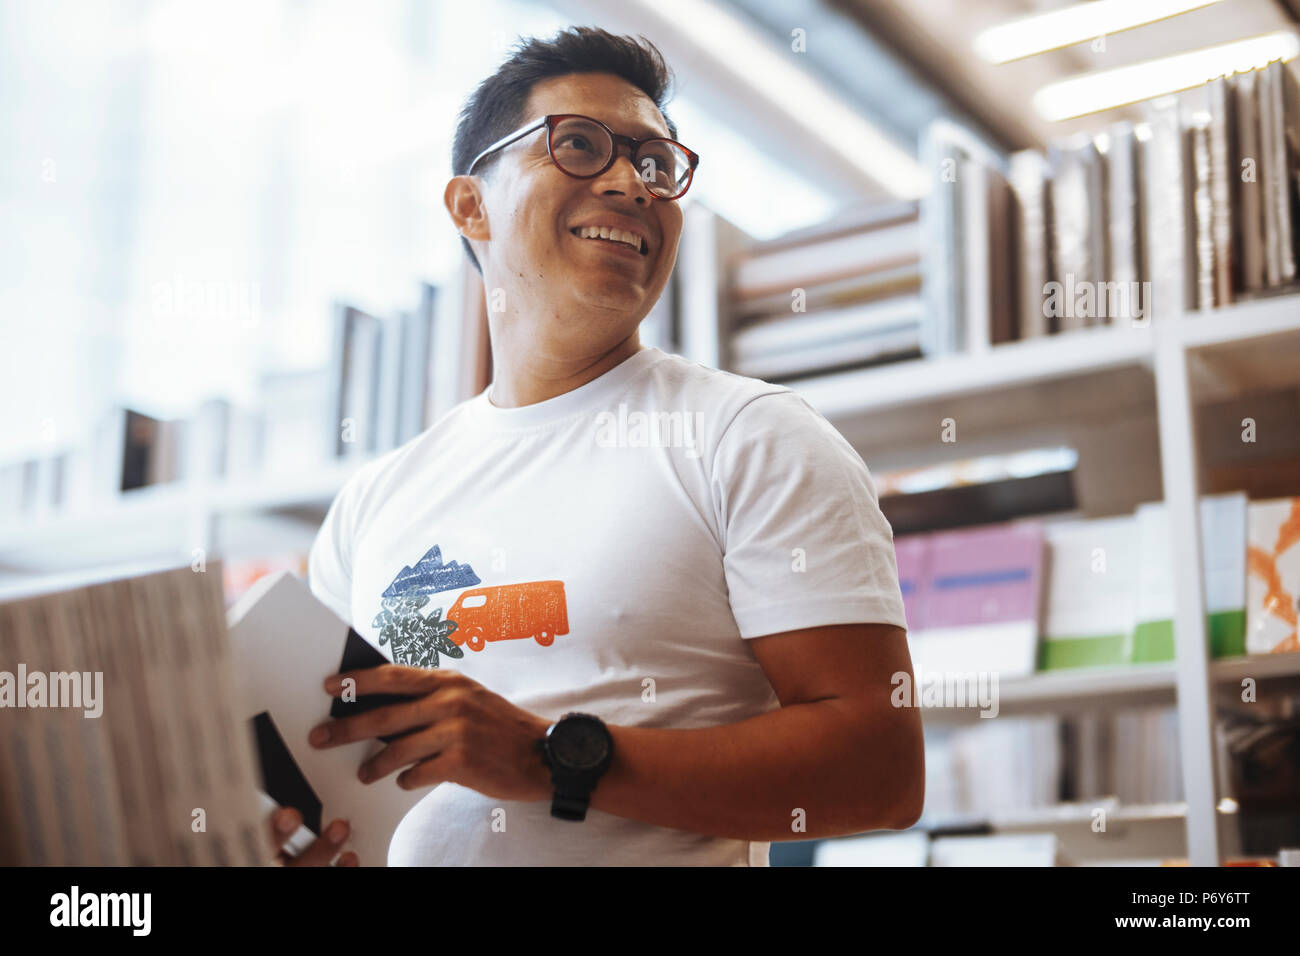 Young happy man reading and looking aside in a bright modern book store. - Stock Image